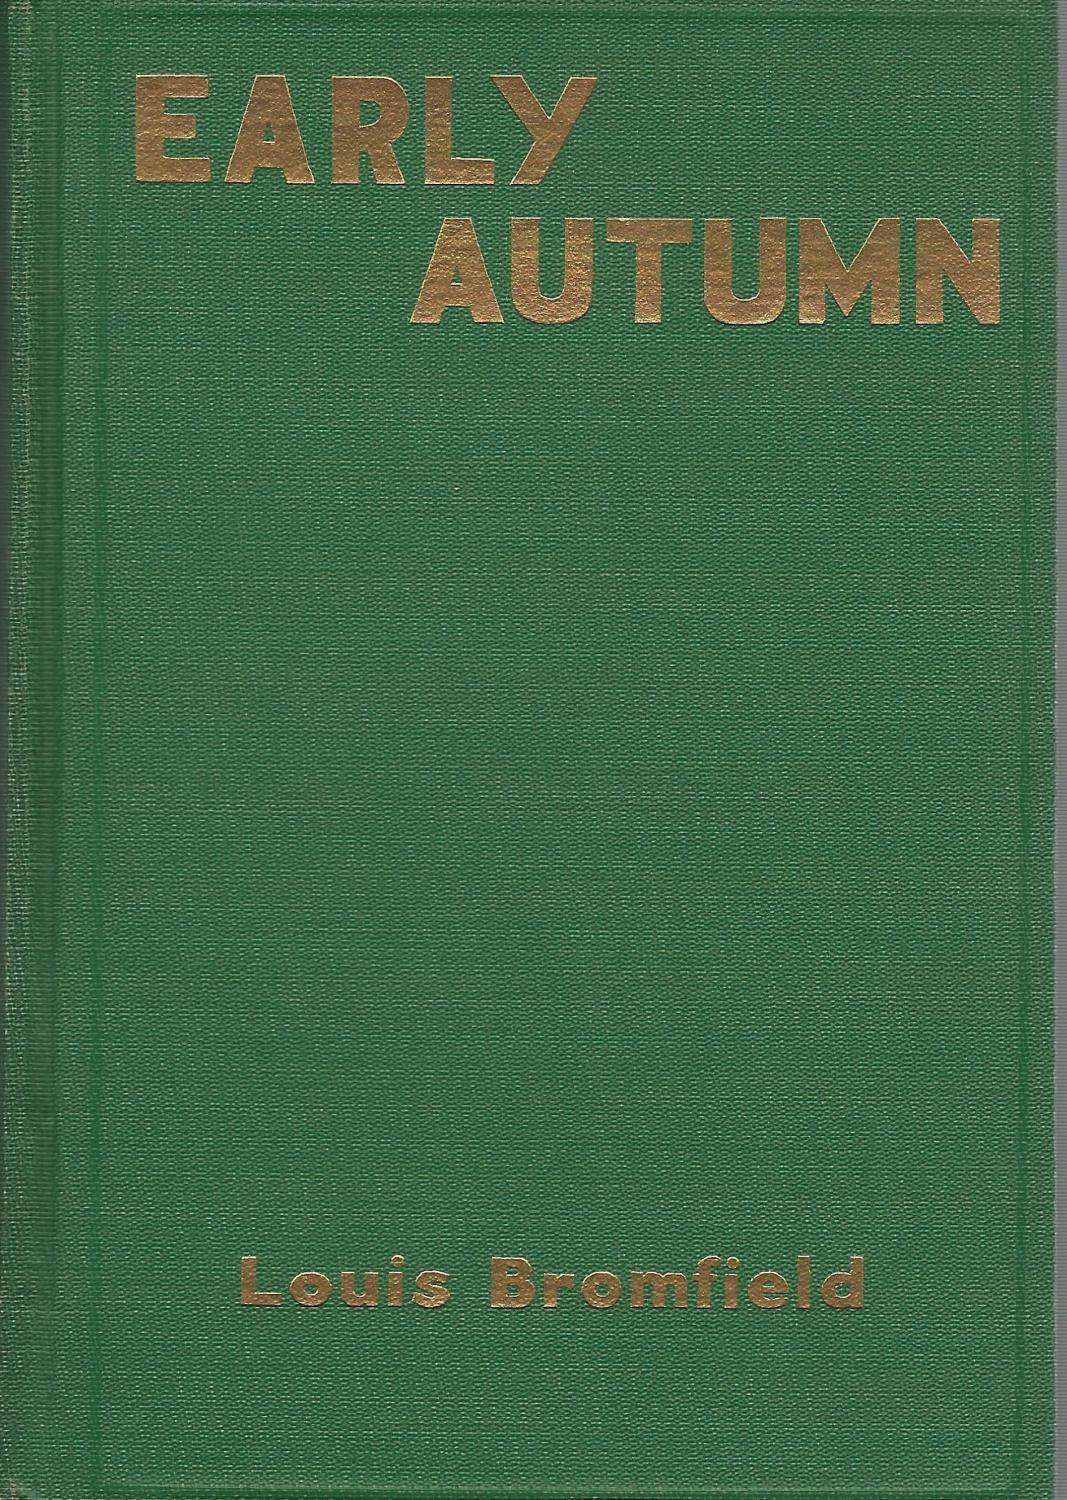 Image result for louis bromfield early autumn